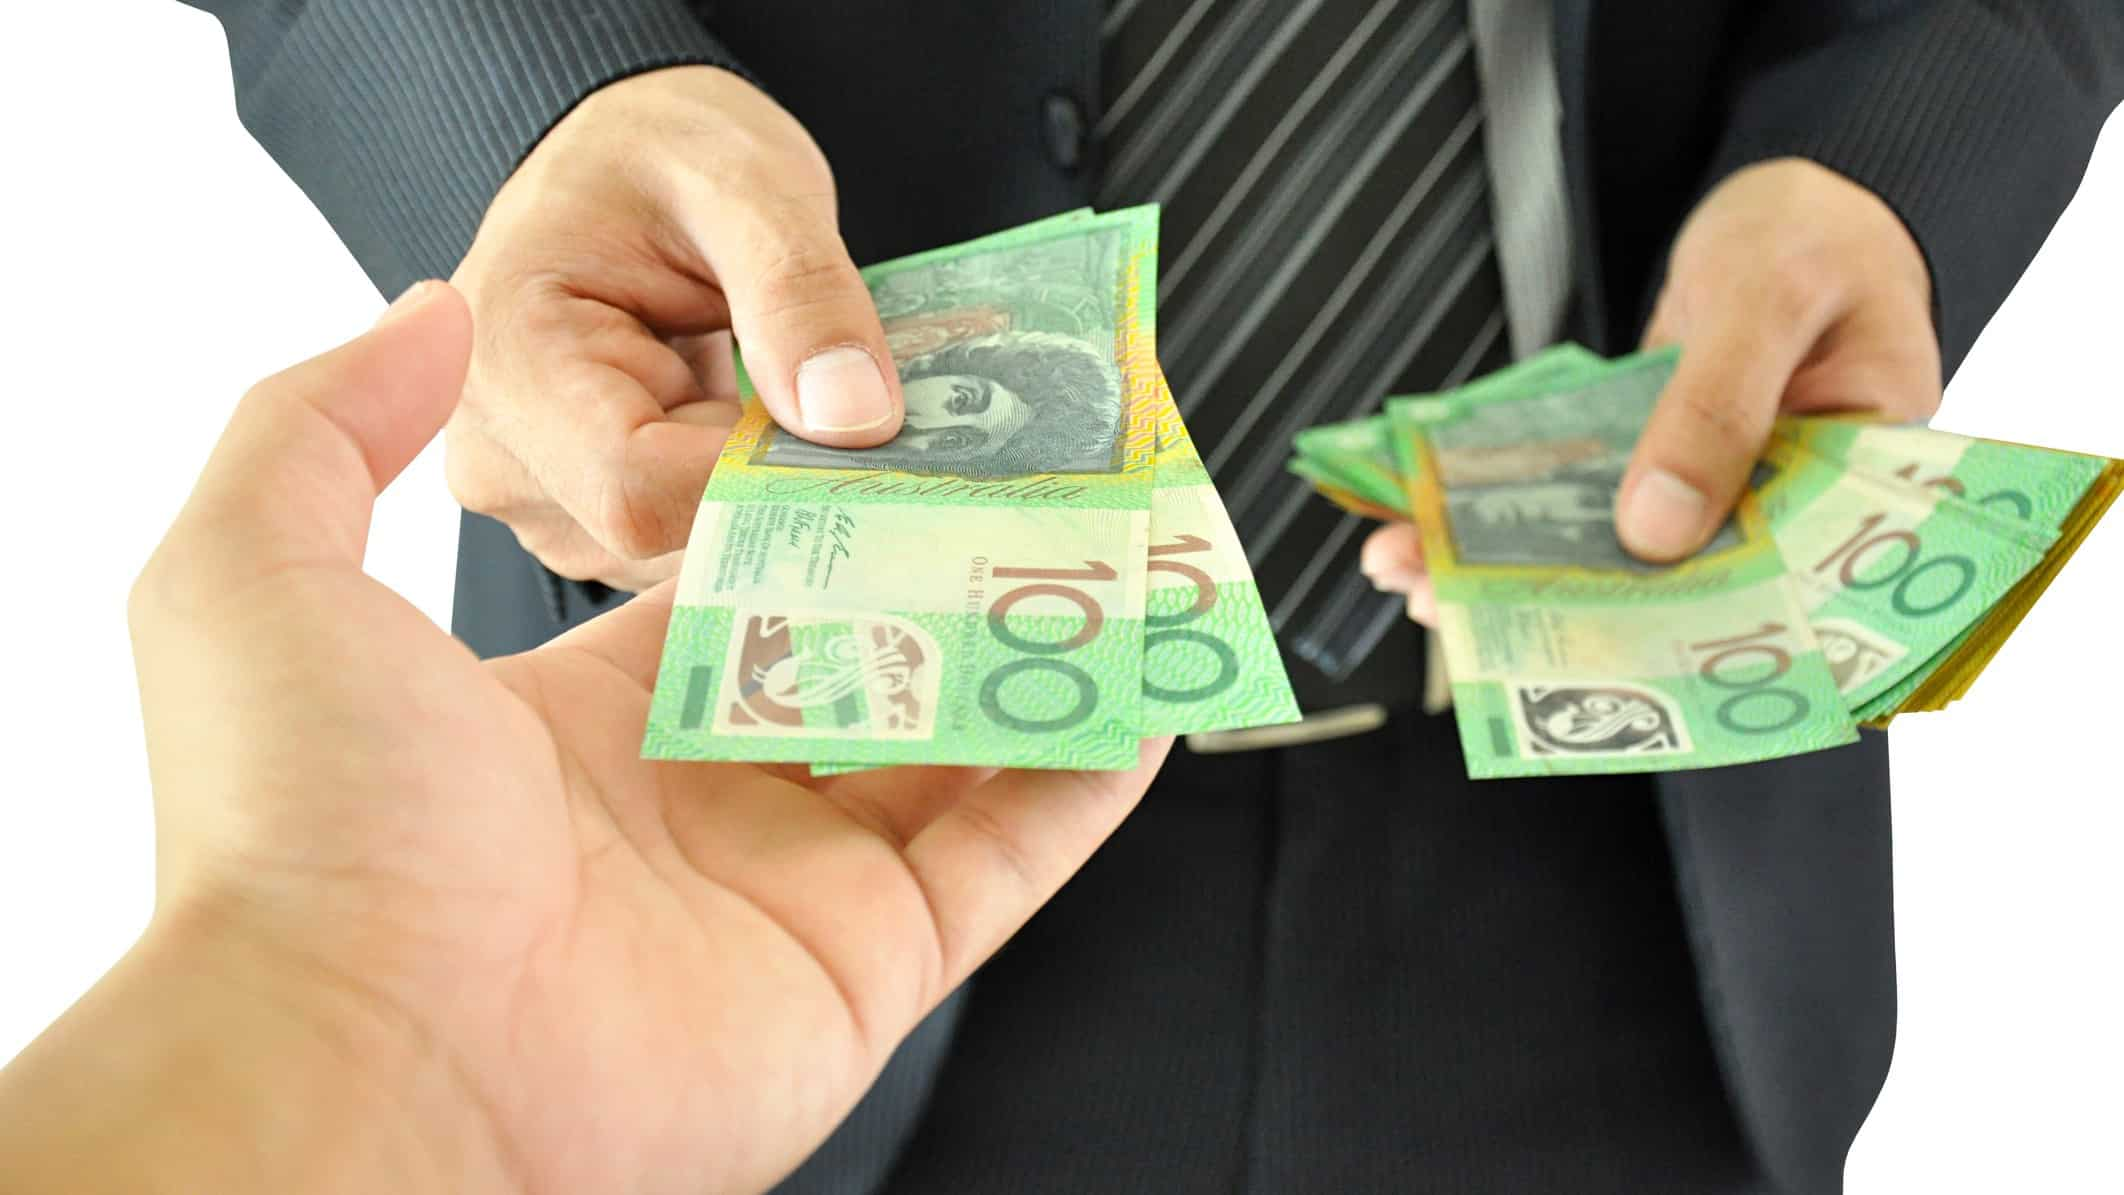 Man handing over cash to another, first investment, asx shares